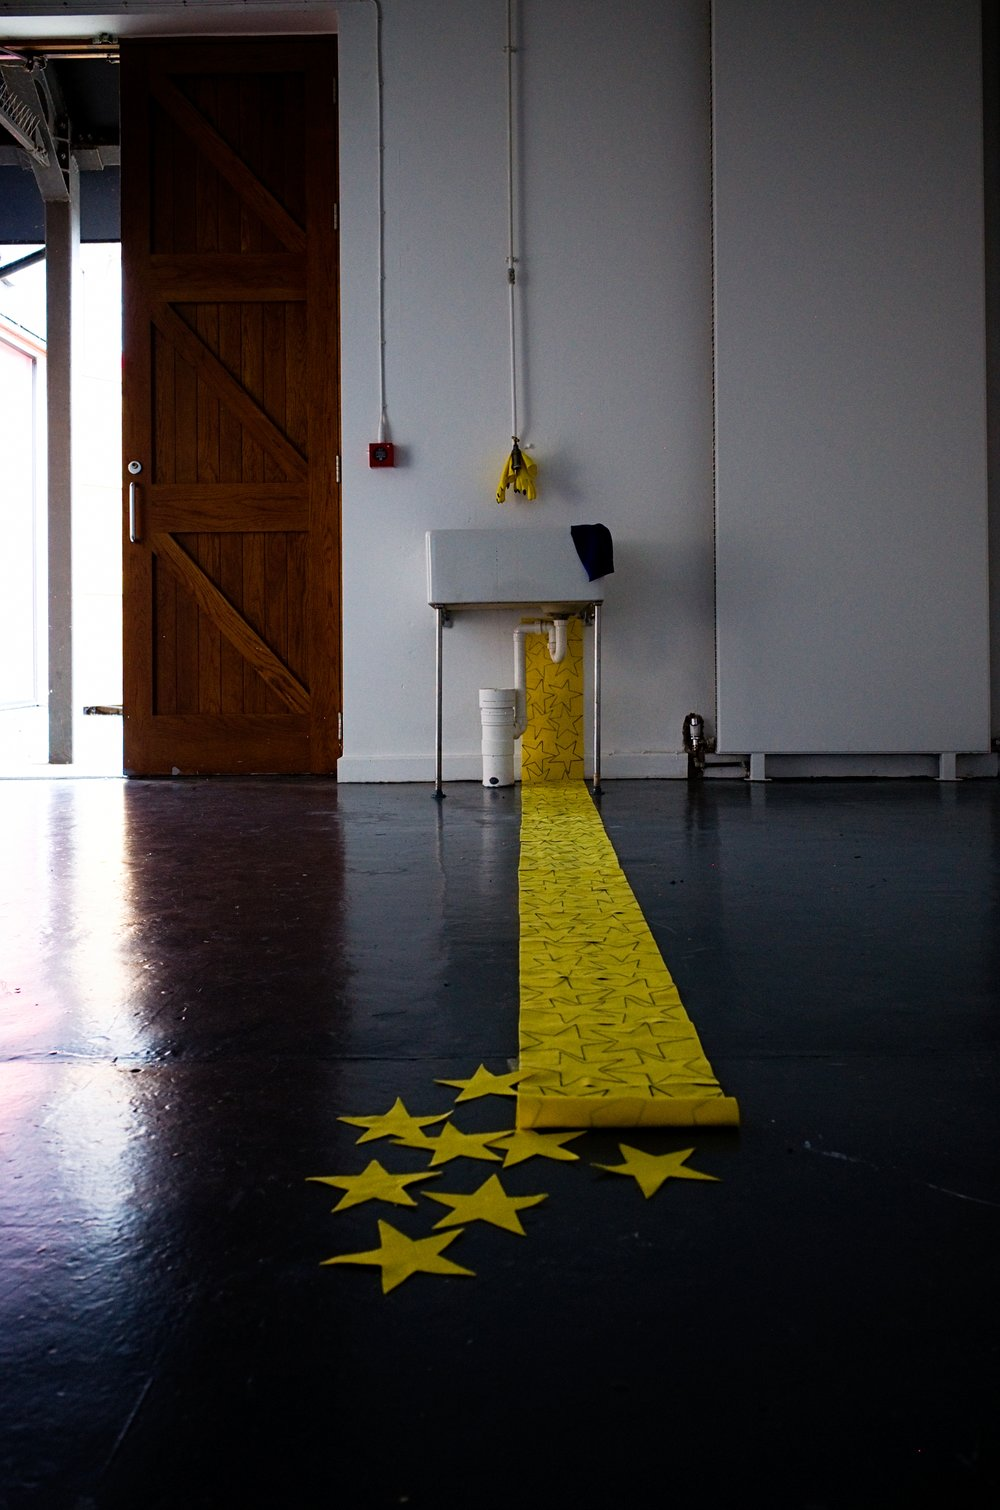 antonis-sideras-performance-art-queer-counting-stars-4